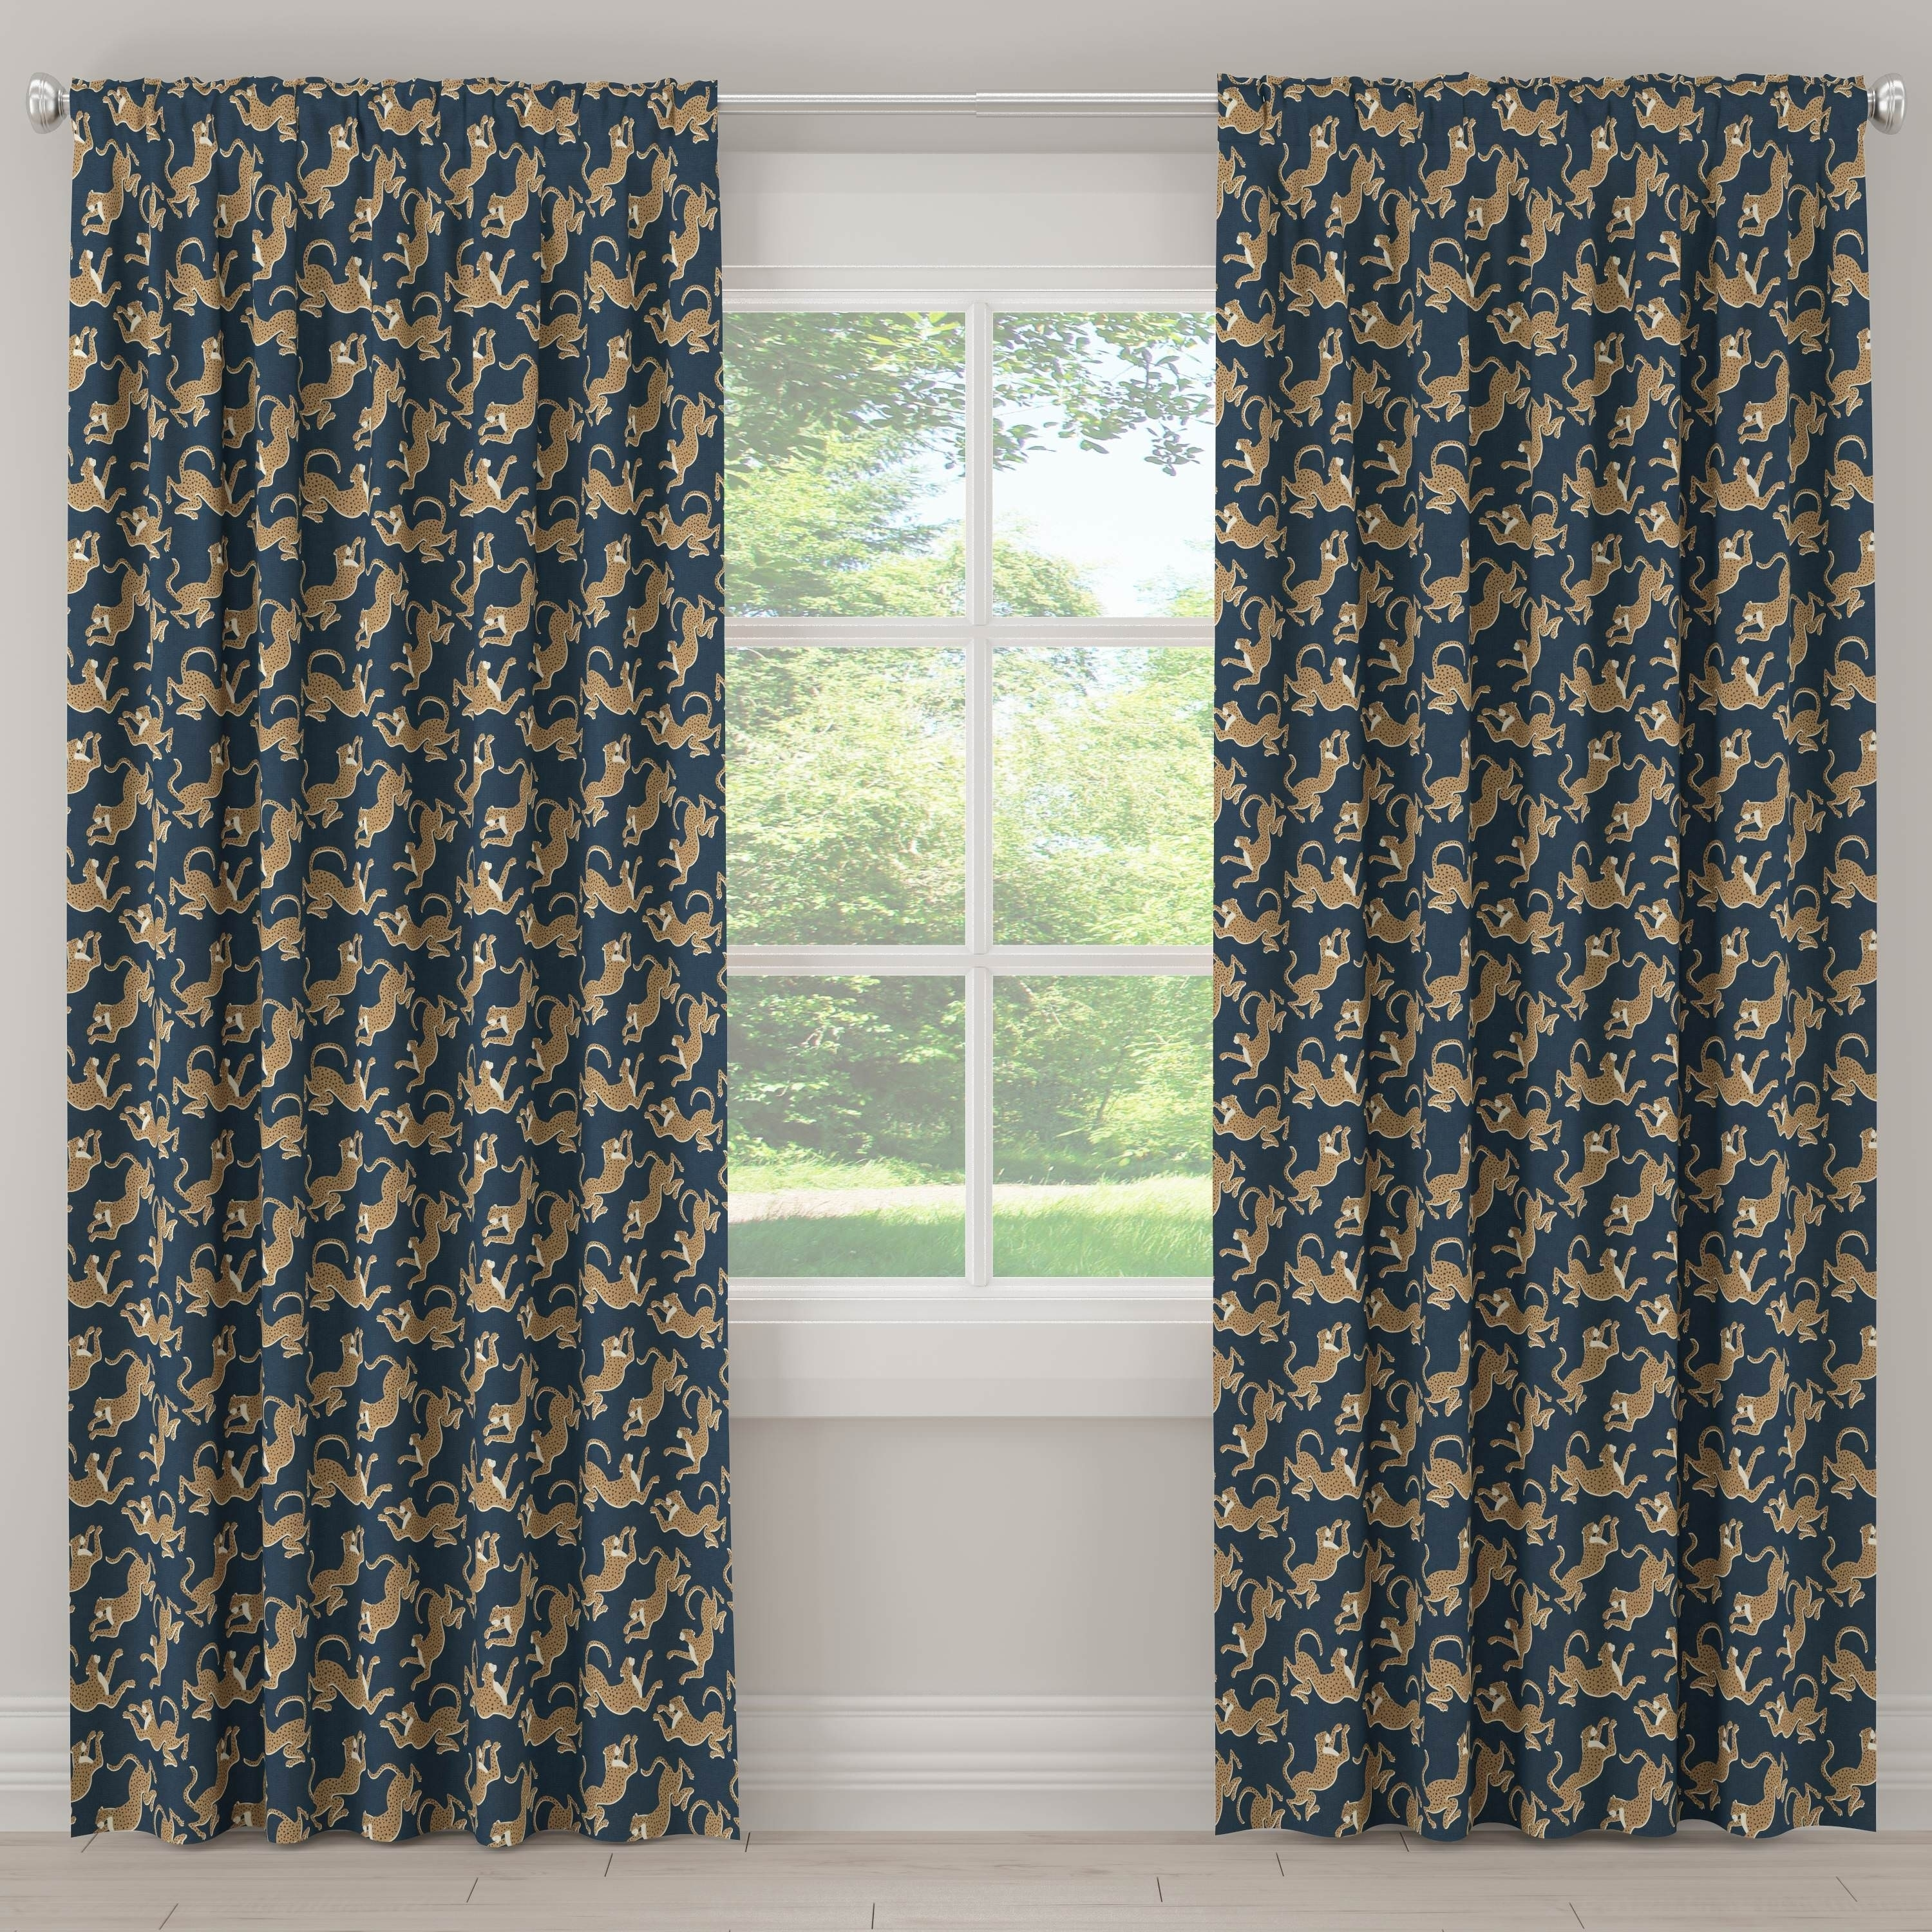 Shop Skyline Furniture Unlined Curtains In Leopard Run Navy